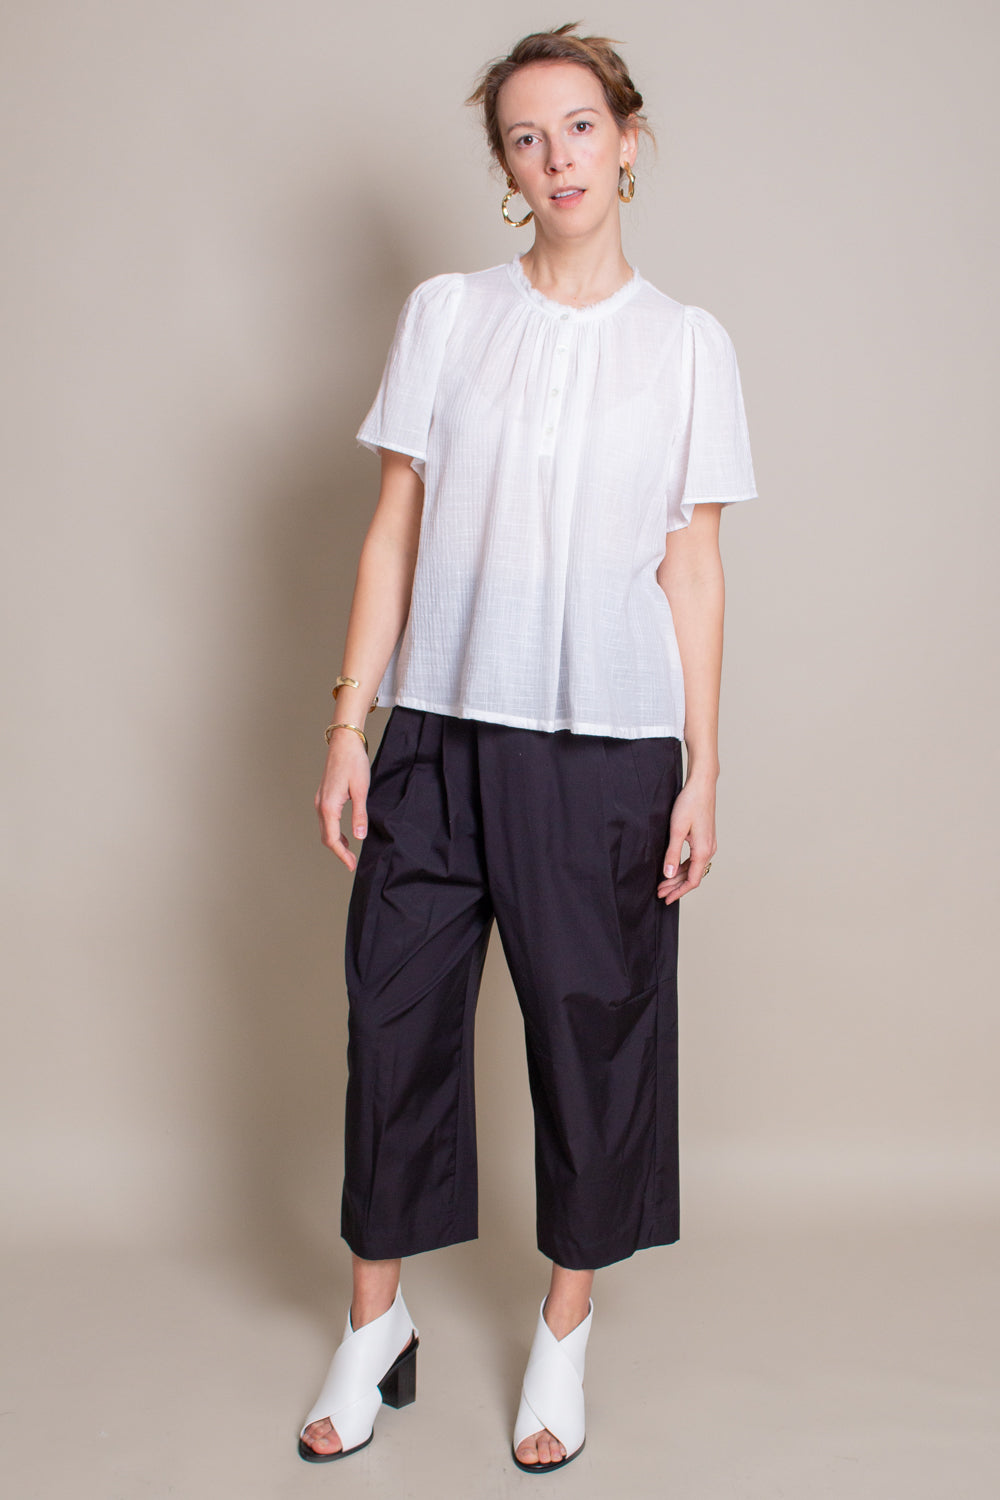 Raquel Allegra Flutter Blouse in Washed White - Vert & Vogue